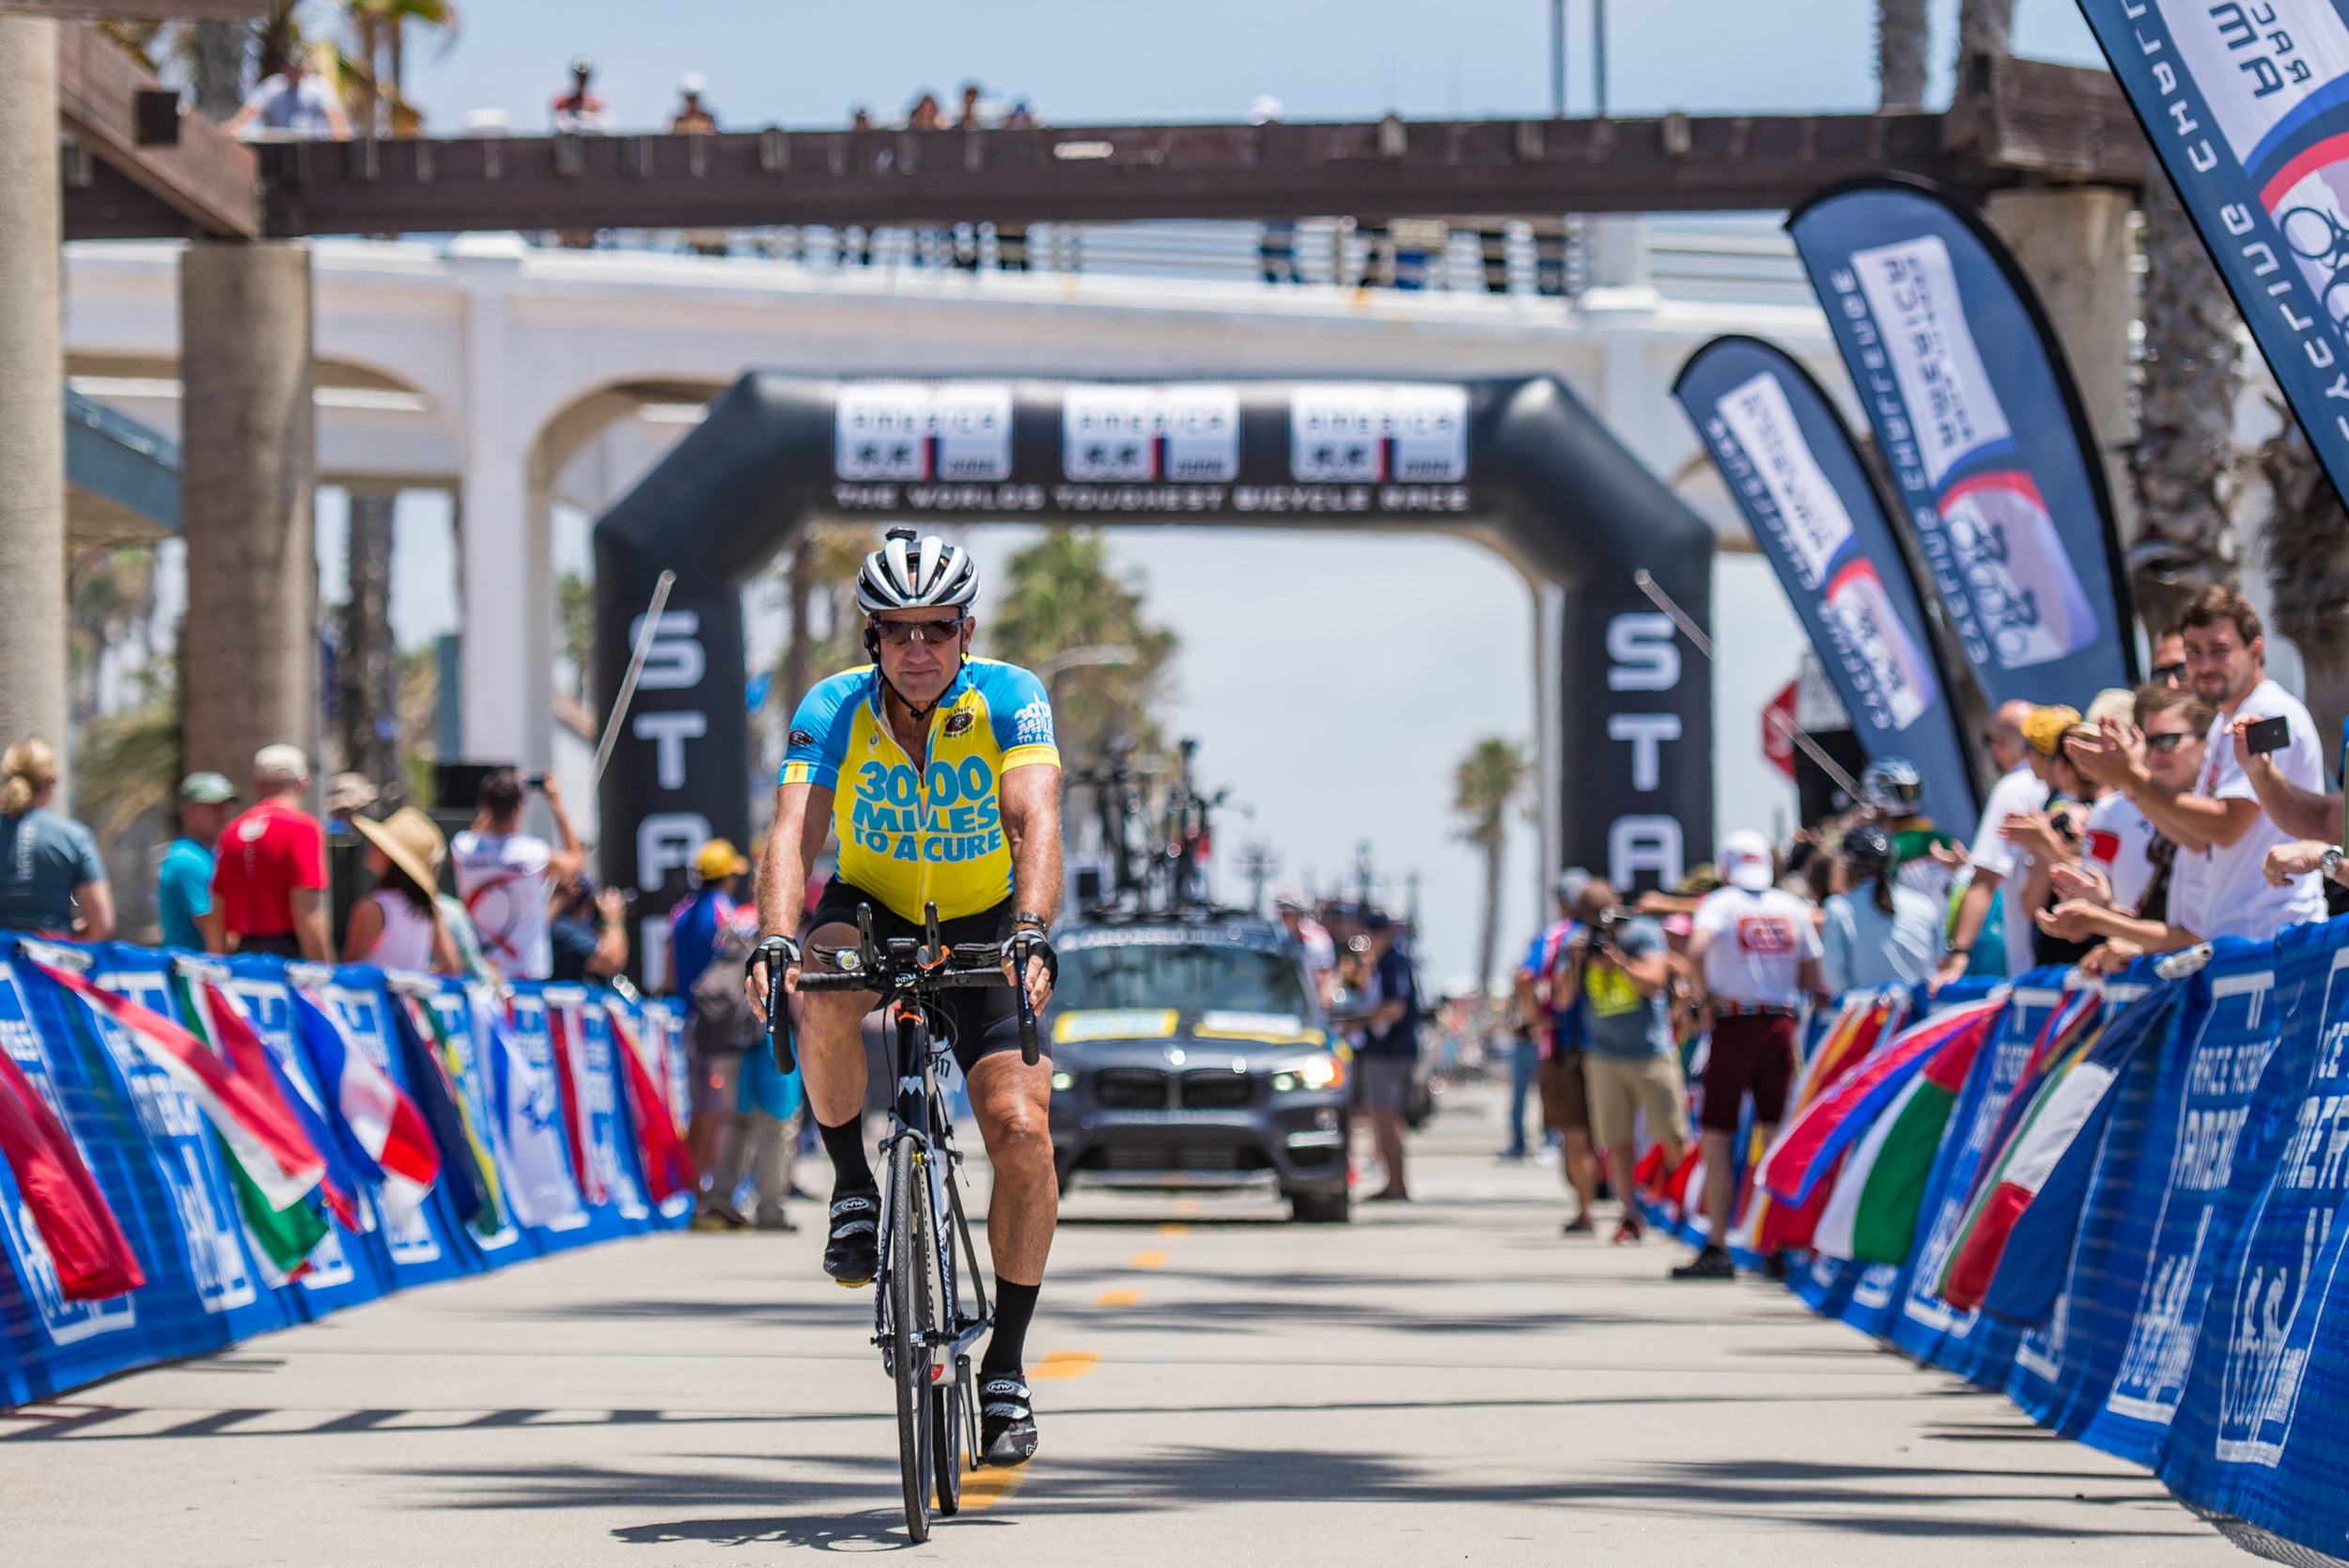 Marshall Reeves began his 3,000 mile, cross-country journey in Oceanside, CA on June 14th, 2016. This was his third attempt at completing the Race Across America, also known as the World's Toughest Race. The difference was that this year, he was racing to raise money for brain cancer research.